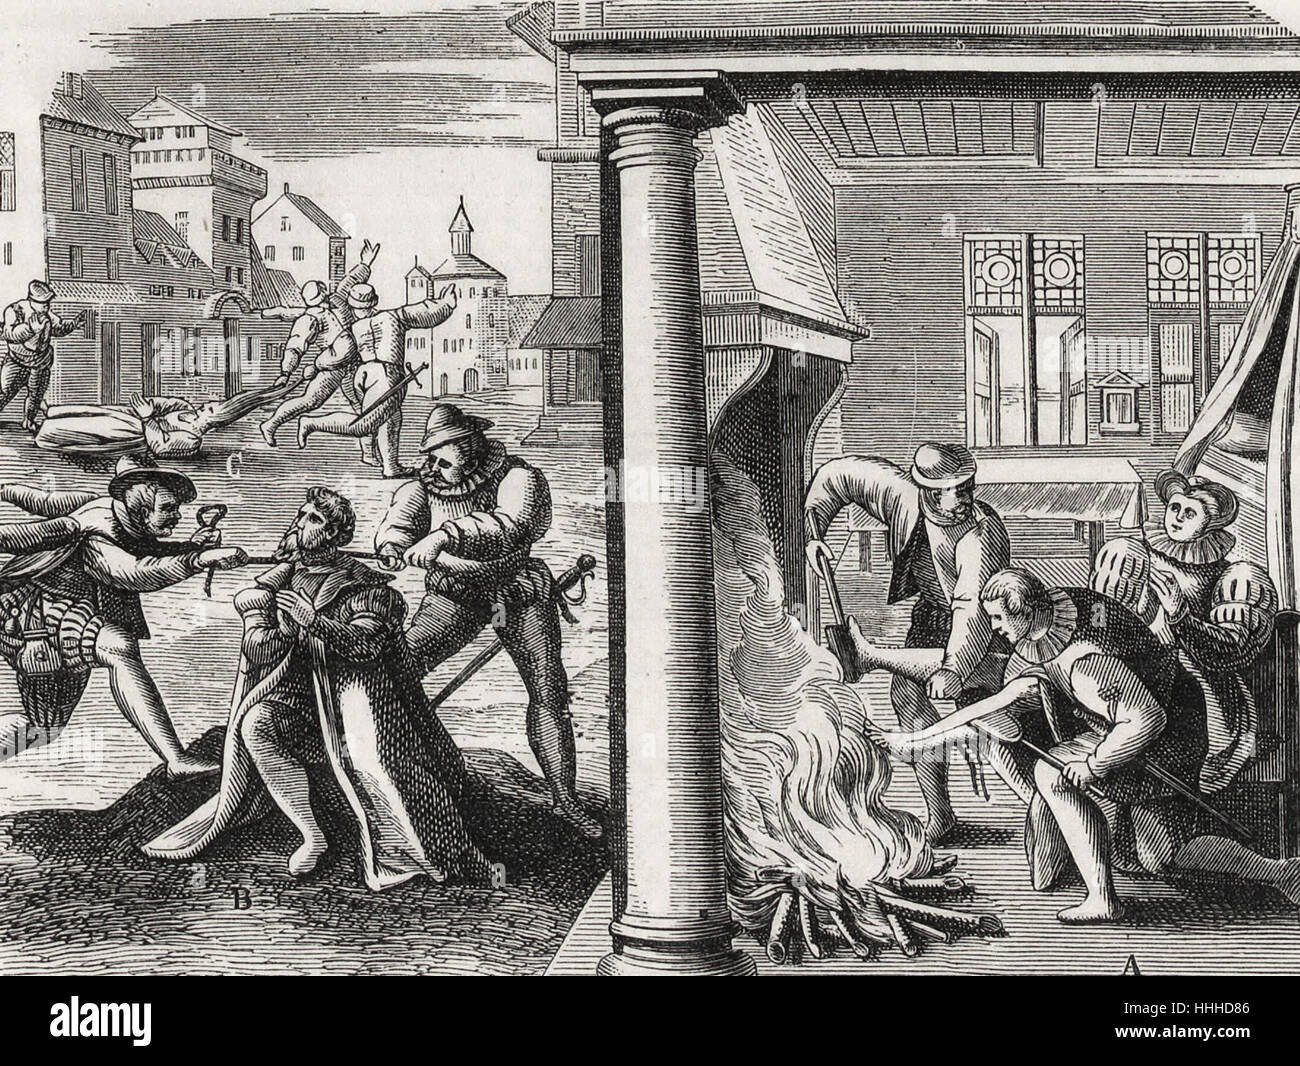 Violence of the French Hugenots against the Catholics - Stock Image